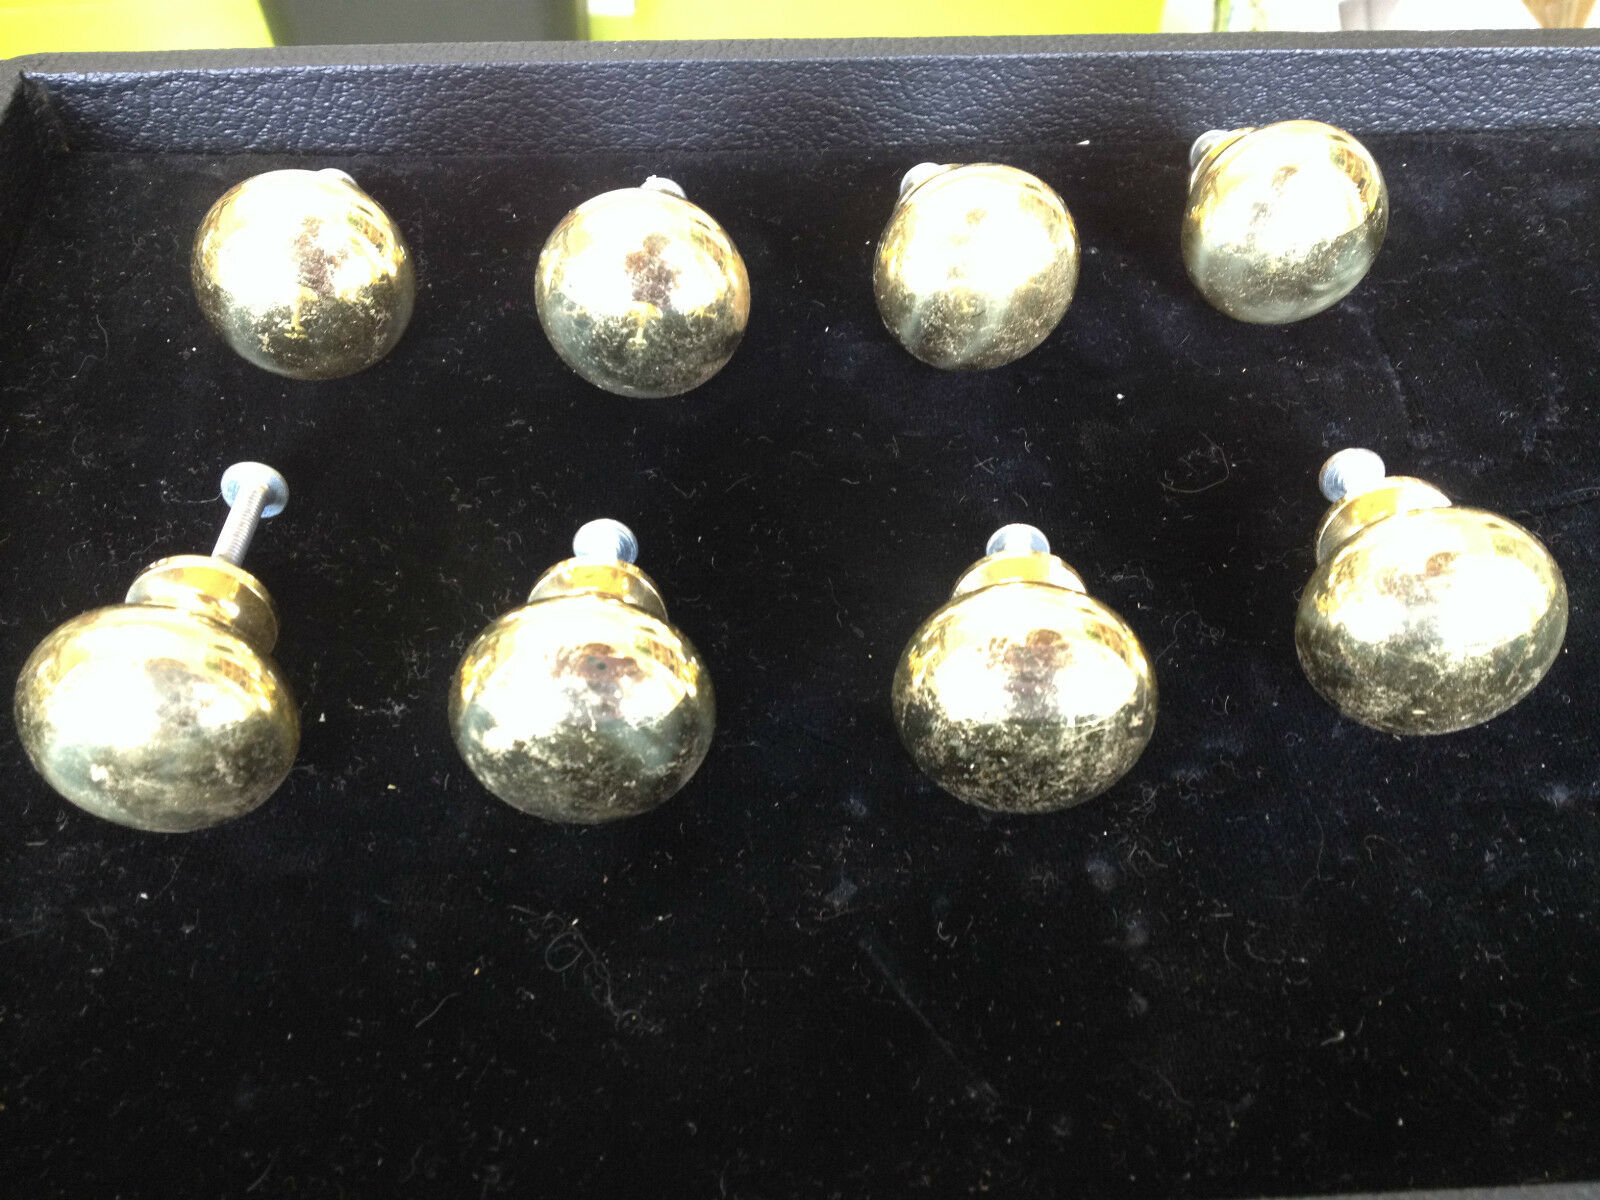 8 Solid Brass Drawer Pulls Knobs Vintage Handles Furniture Cabinet Hardware